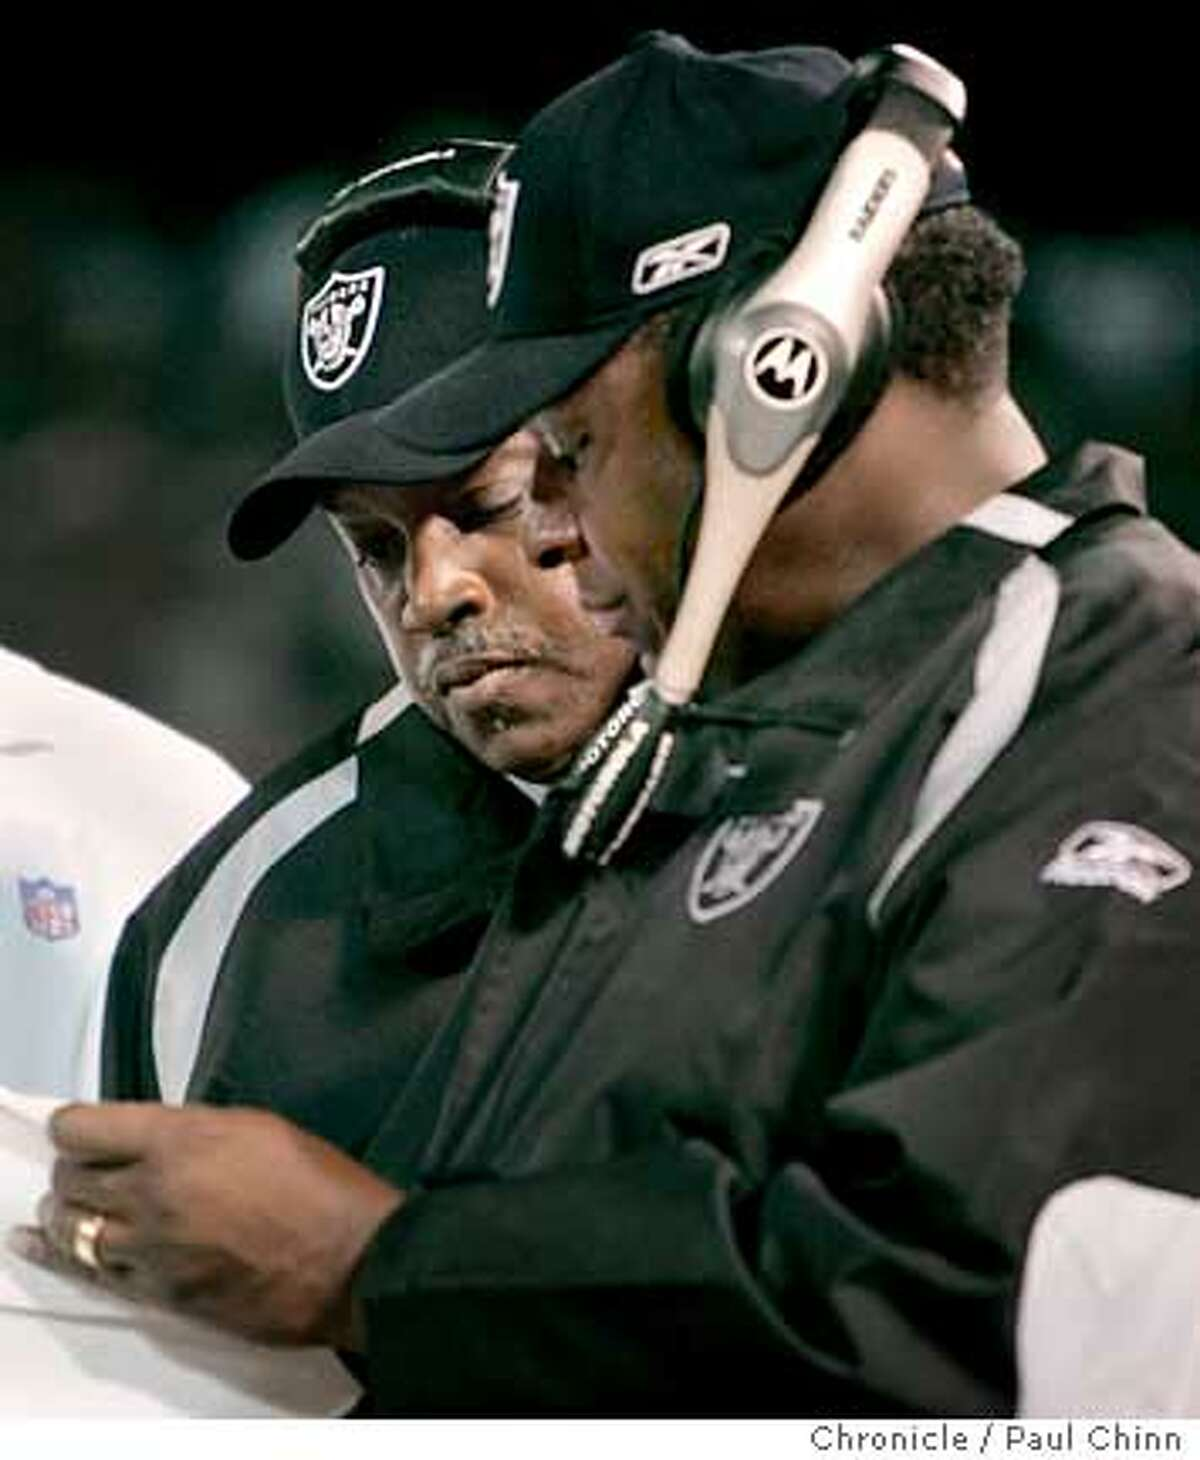 Head coach Art Shell (left) confers with co-offensive line coach Jackie Slater in the fourth quarter of the Oakland Raiders vs. San Diego Chargers at McAfee Coliseum in Oakland, Calif. on Monday, September 11, 2006. PAUL CHINN/The Chronicle **Art Shell, Jackie Slater Ran on: 09-13-2006 Art Shell and Jackie Slater are both Hall of Famer offensive linemen, but the current crop of Raiders they are coaching do not seem destined for such status. That may call for a special brand of understanding that many elite players do not have. Ran on: 09-13-2006 Art Shell and Jackie Slater are both Hall of Fame offensive linemen, but the current crop of Raiders they are coaching do not seem destined for such status. That may call for a special brand of understanding that many elite players do not have. ALSO Ran on: 12-25-2006 Hall of Famers Art Shell (left) and Jackie Slater have tried to teach the Raiders offensive linemen some new techniques. Ran on: 12-25-2006 Hall of Famers Art Shell (left) and Jackie Slater have tried to teach the Raiders offensive linemen some new techniques. Ran on: 01-31-2007 Jackie Slater (right), with former head coach Art Shell, wont be back as an offensive line coach with the Raiders next season.